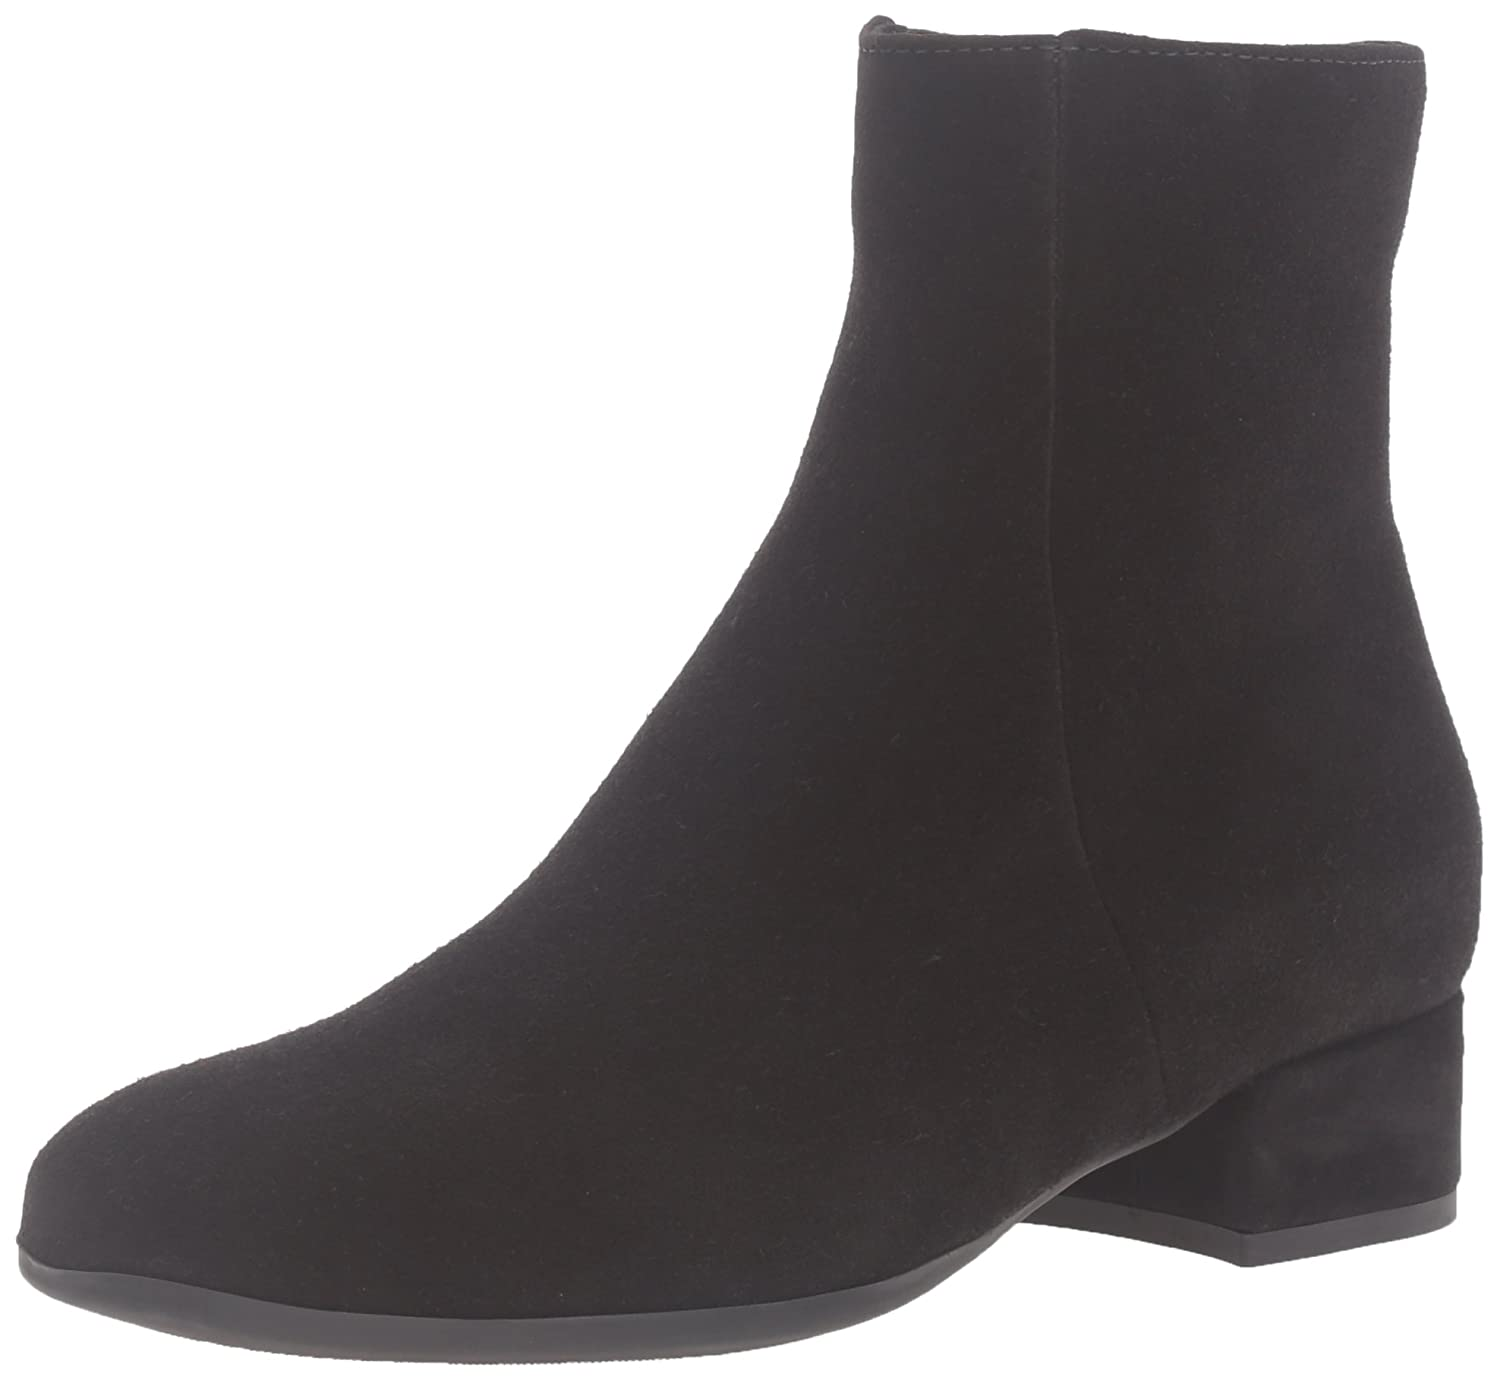 La Canadienne Women's Jillian Fashion Boot B018RRXZGS 8 B(M) US|Black Suede